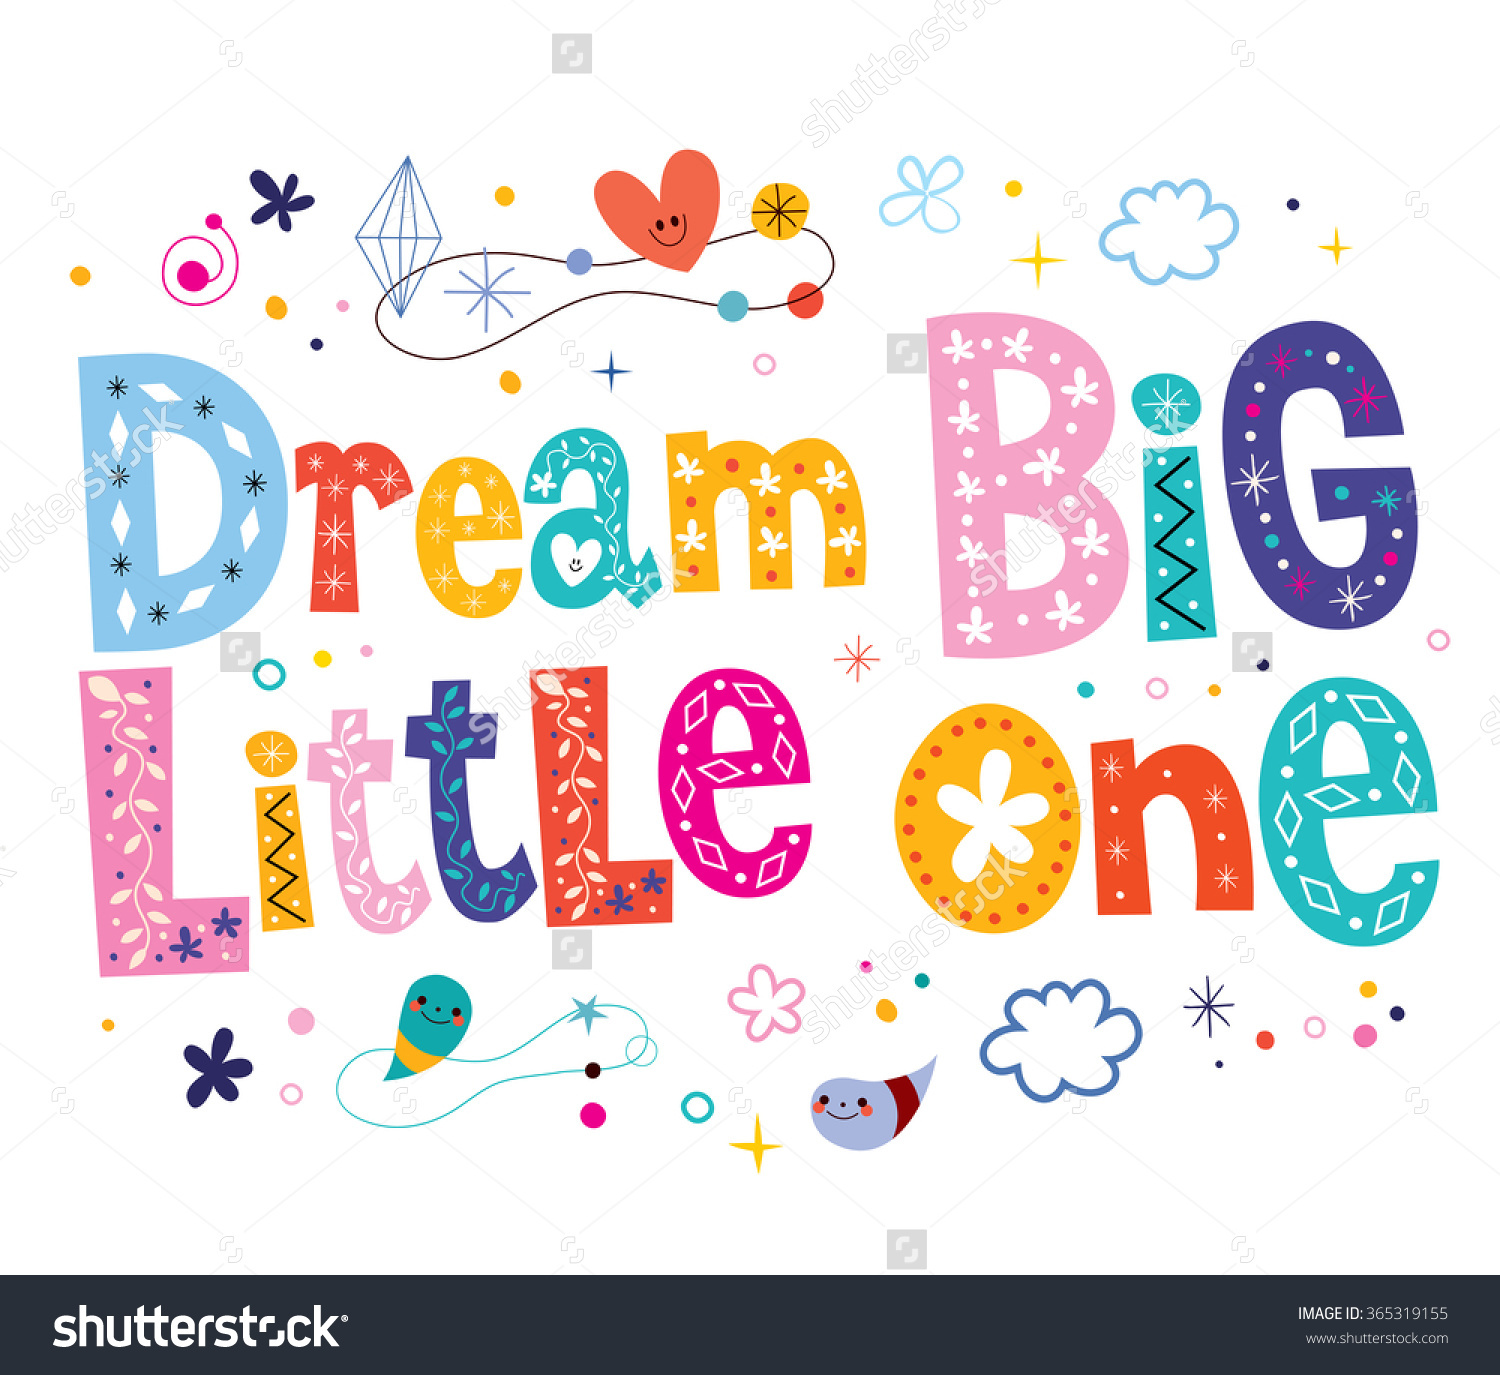 Dream Big Little One Nursery Art Stock Vector 365319155.